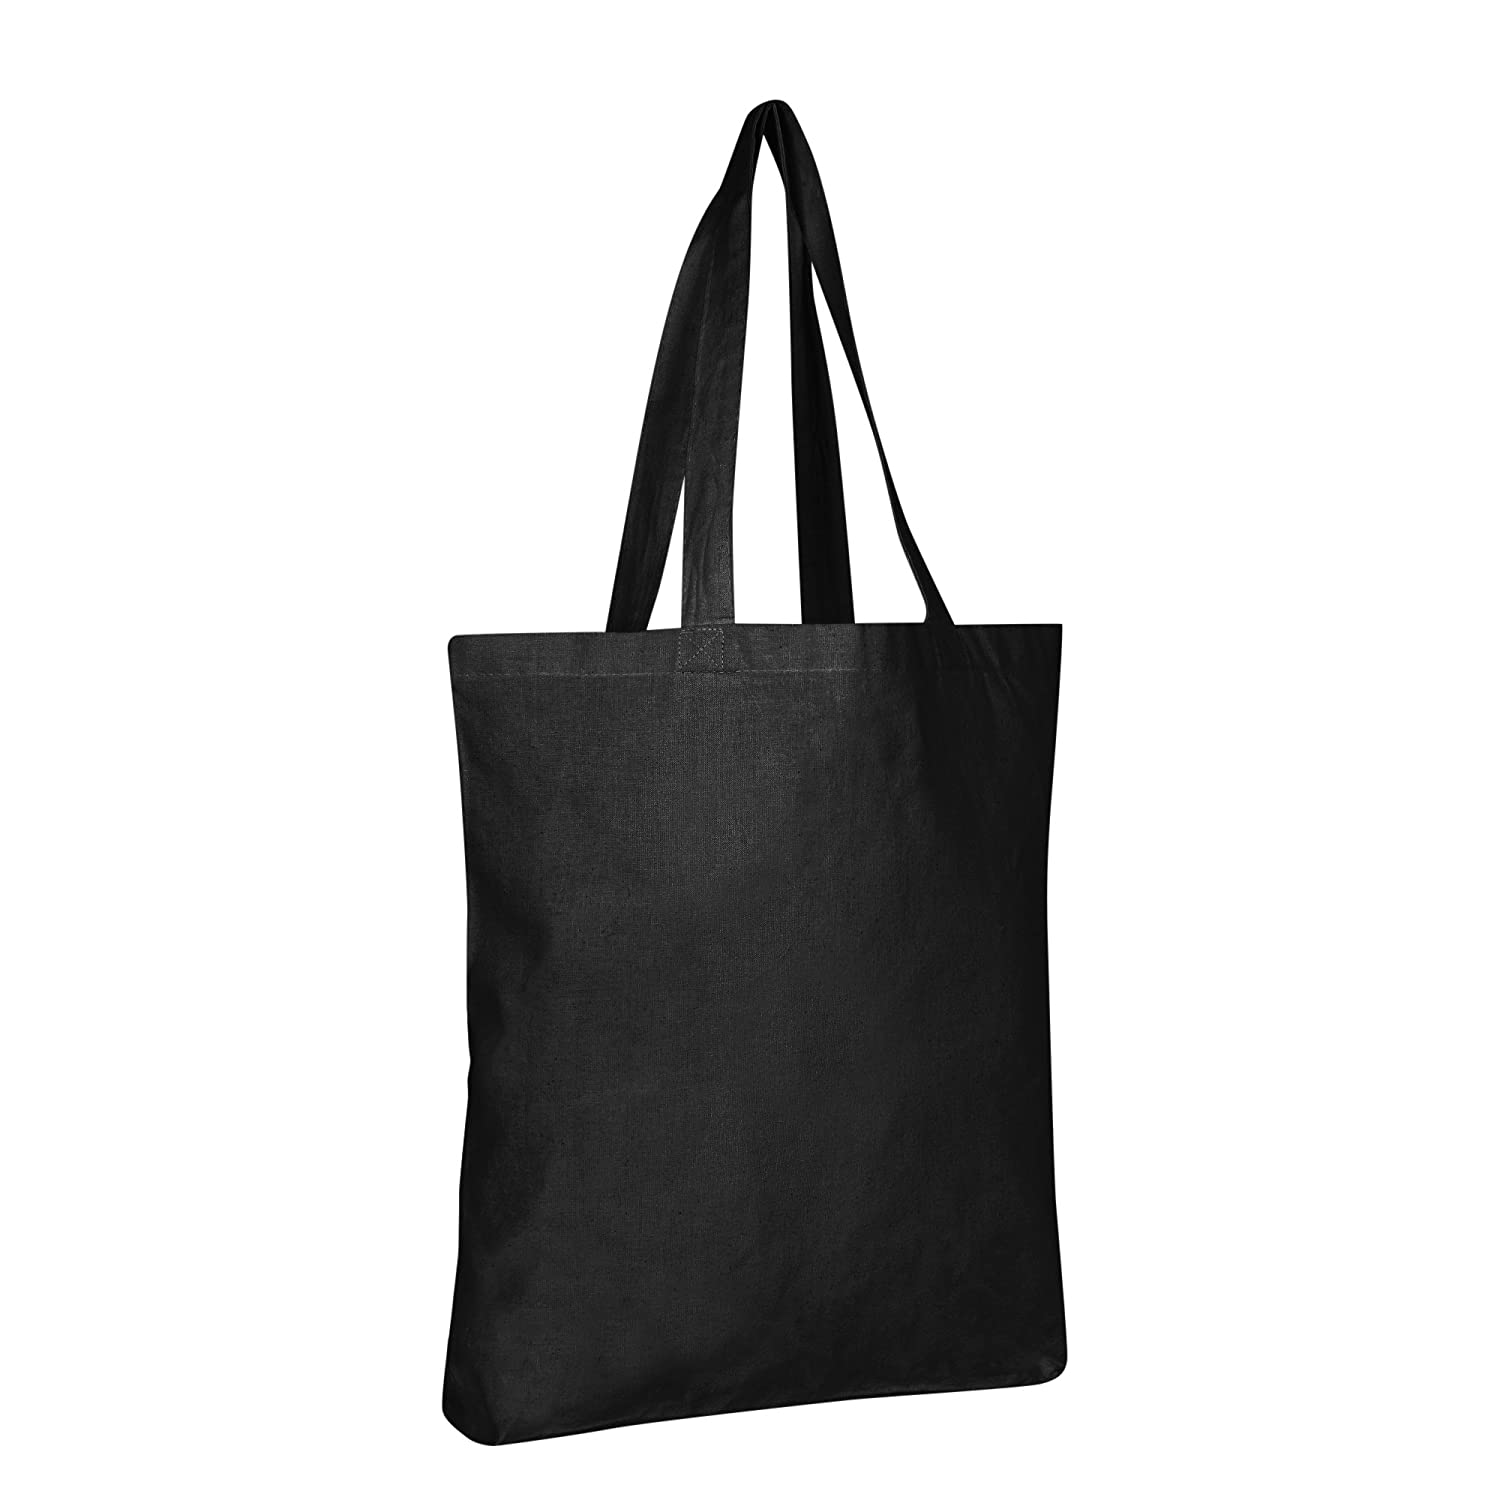 100% Cotton Canvas Reusable Grocery Bags by BagzDepot (12 Pack, Black) by BagzDepot B01HVZZTGG 12 Pack|ブラック ブラック 12 Pack